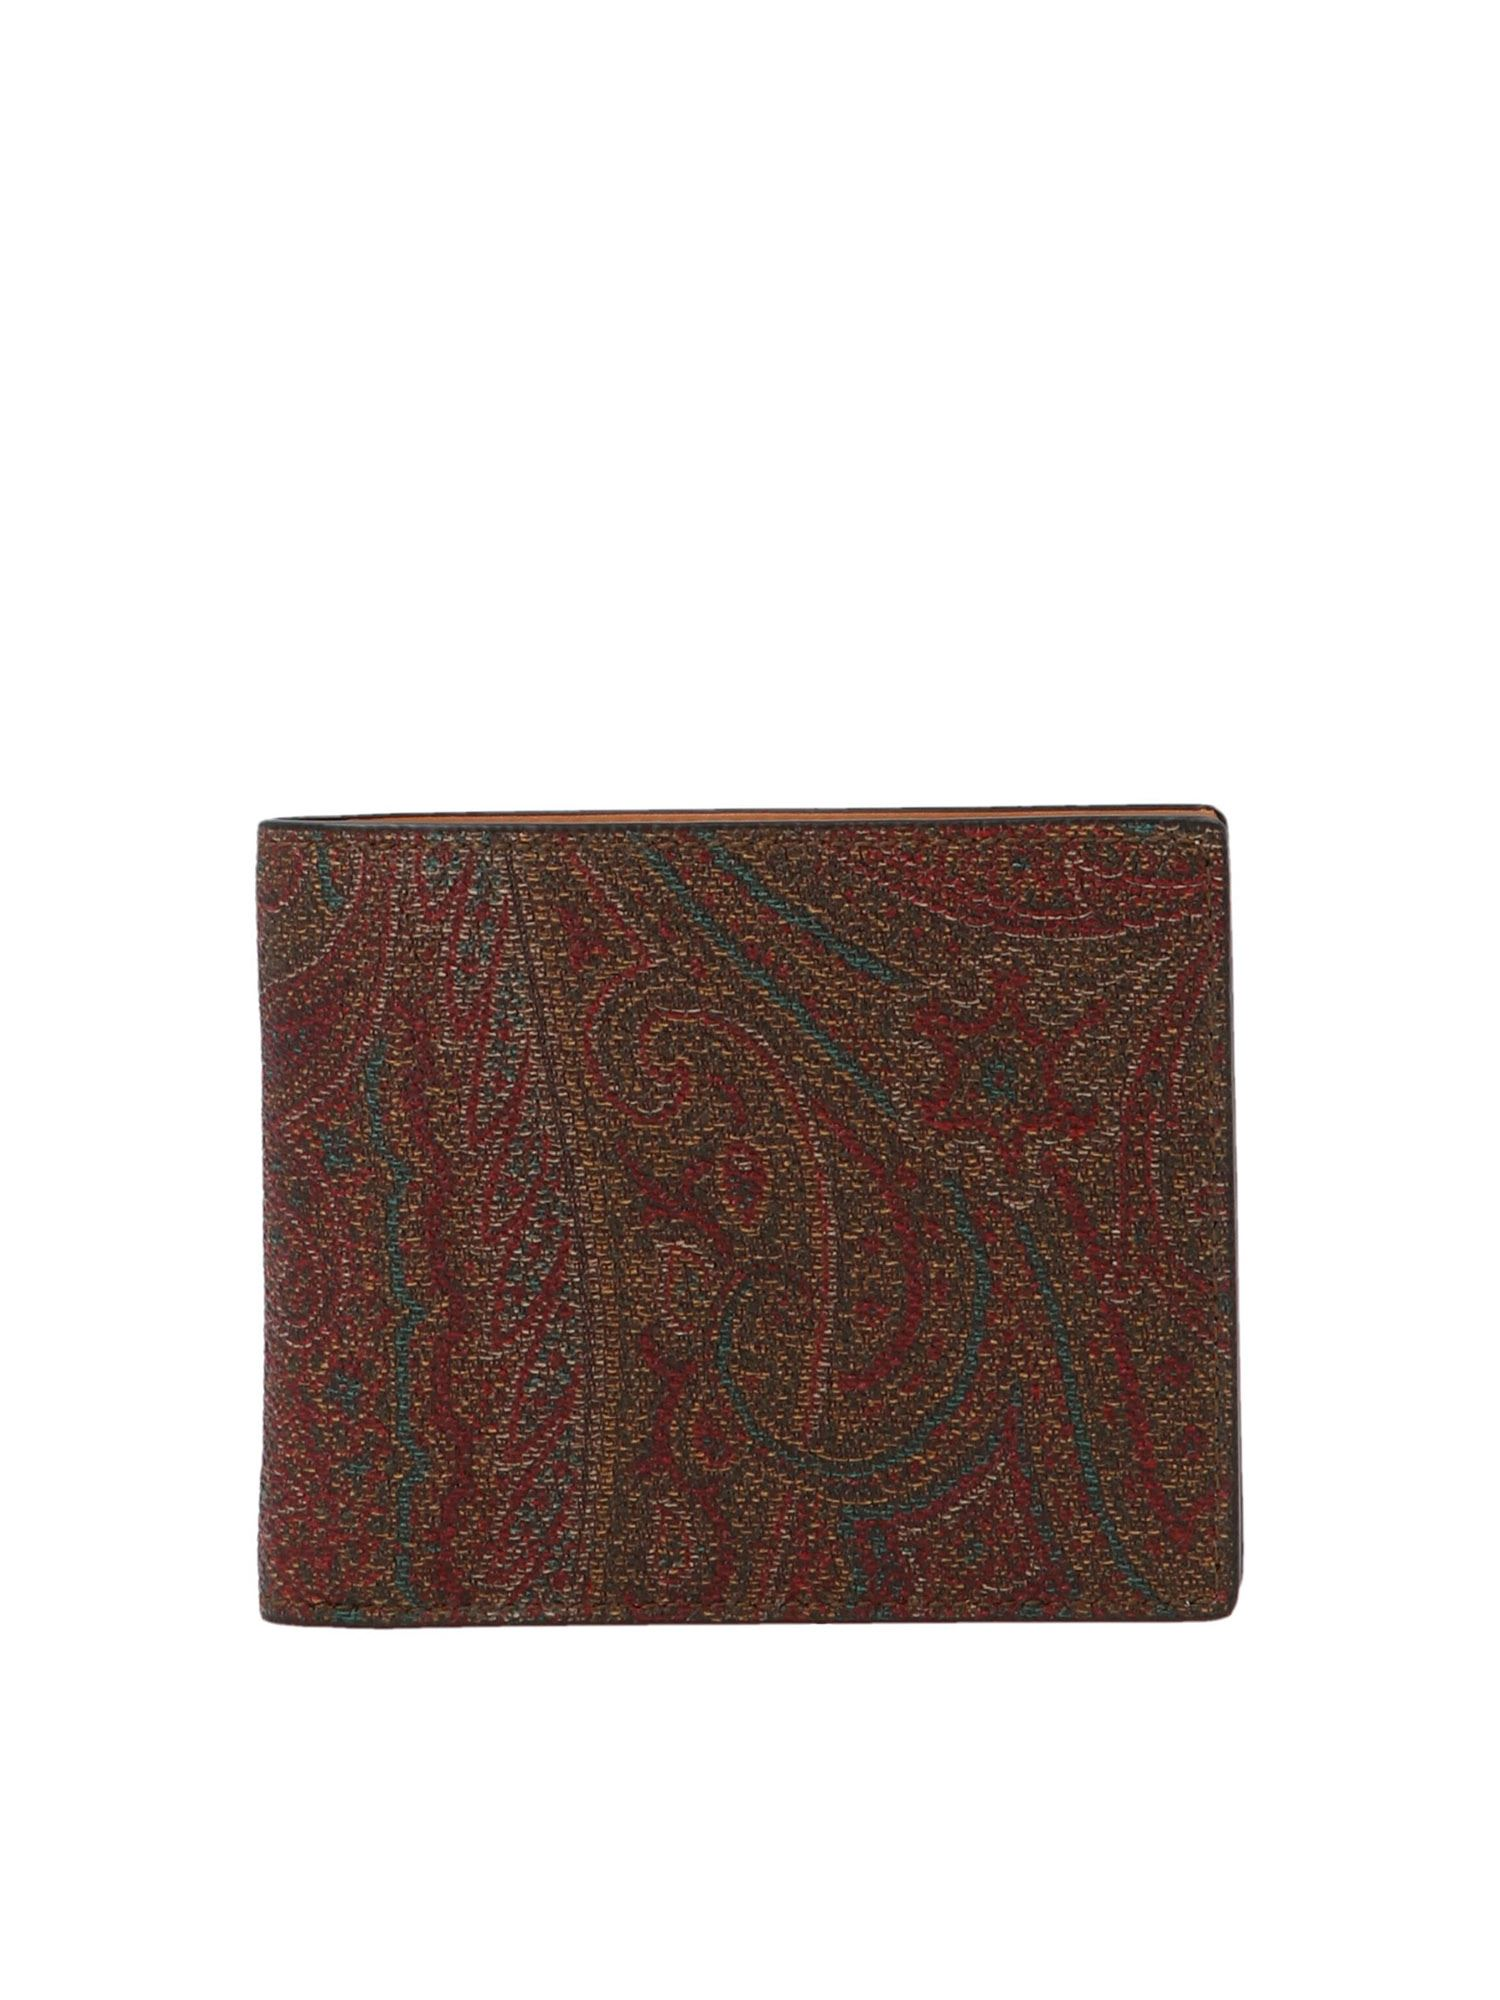 Etro PAISLEY WALLET IN MULTICOLOR